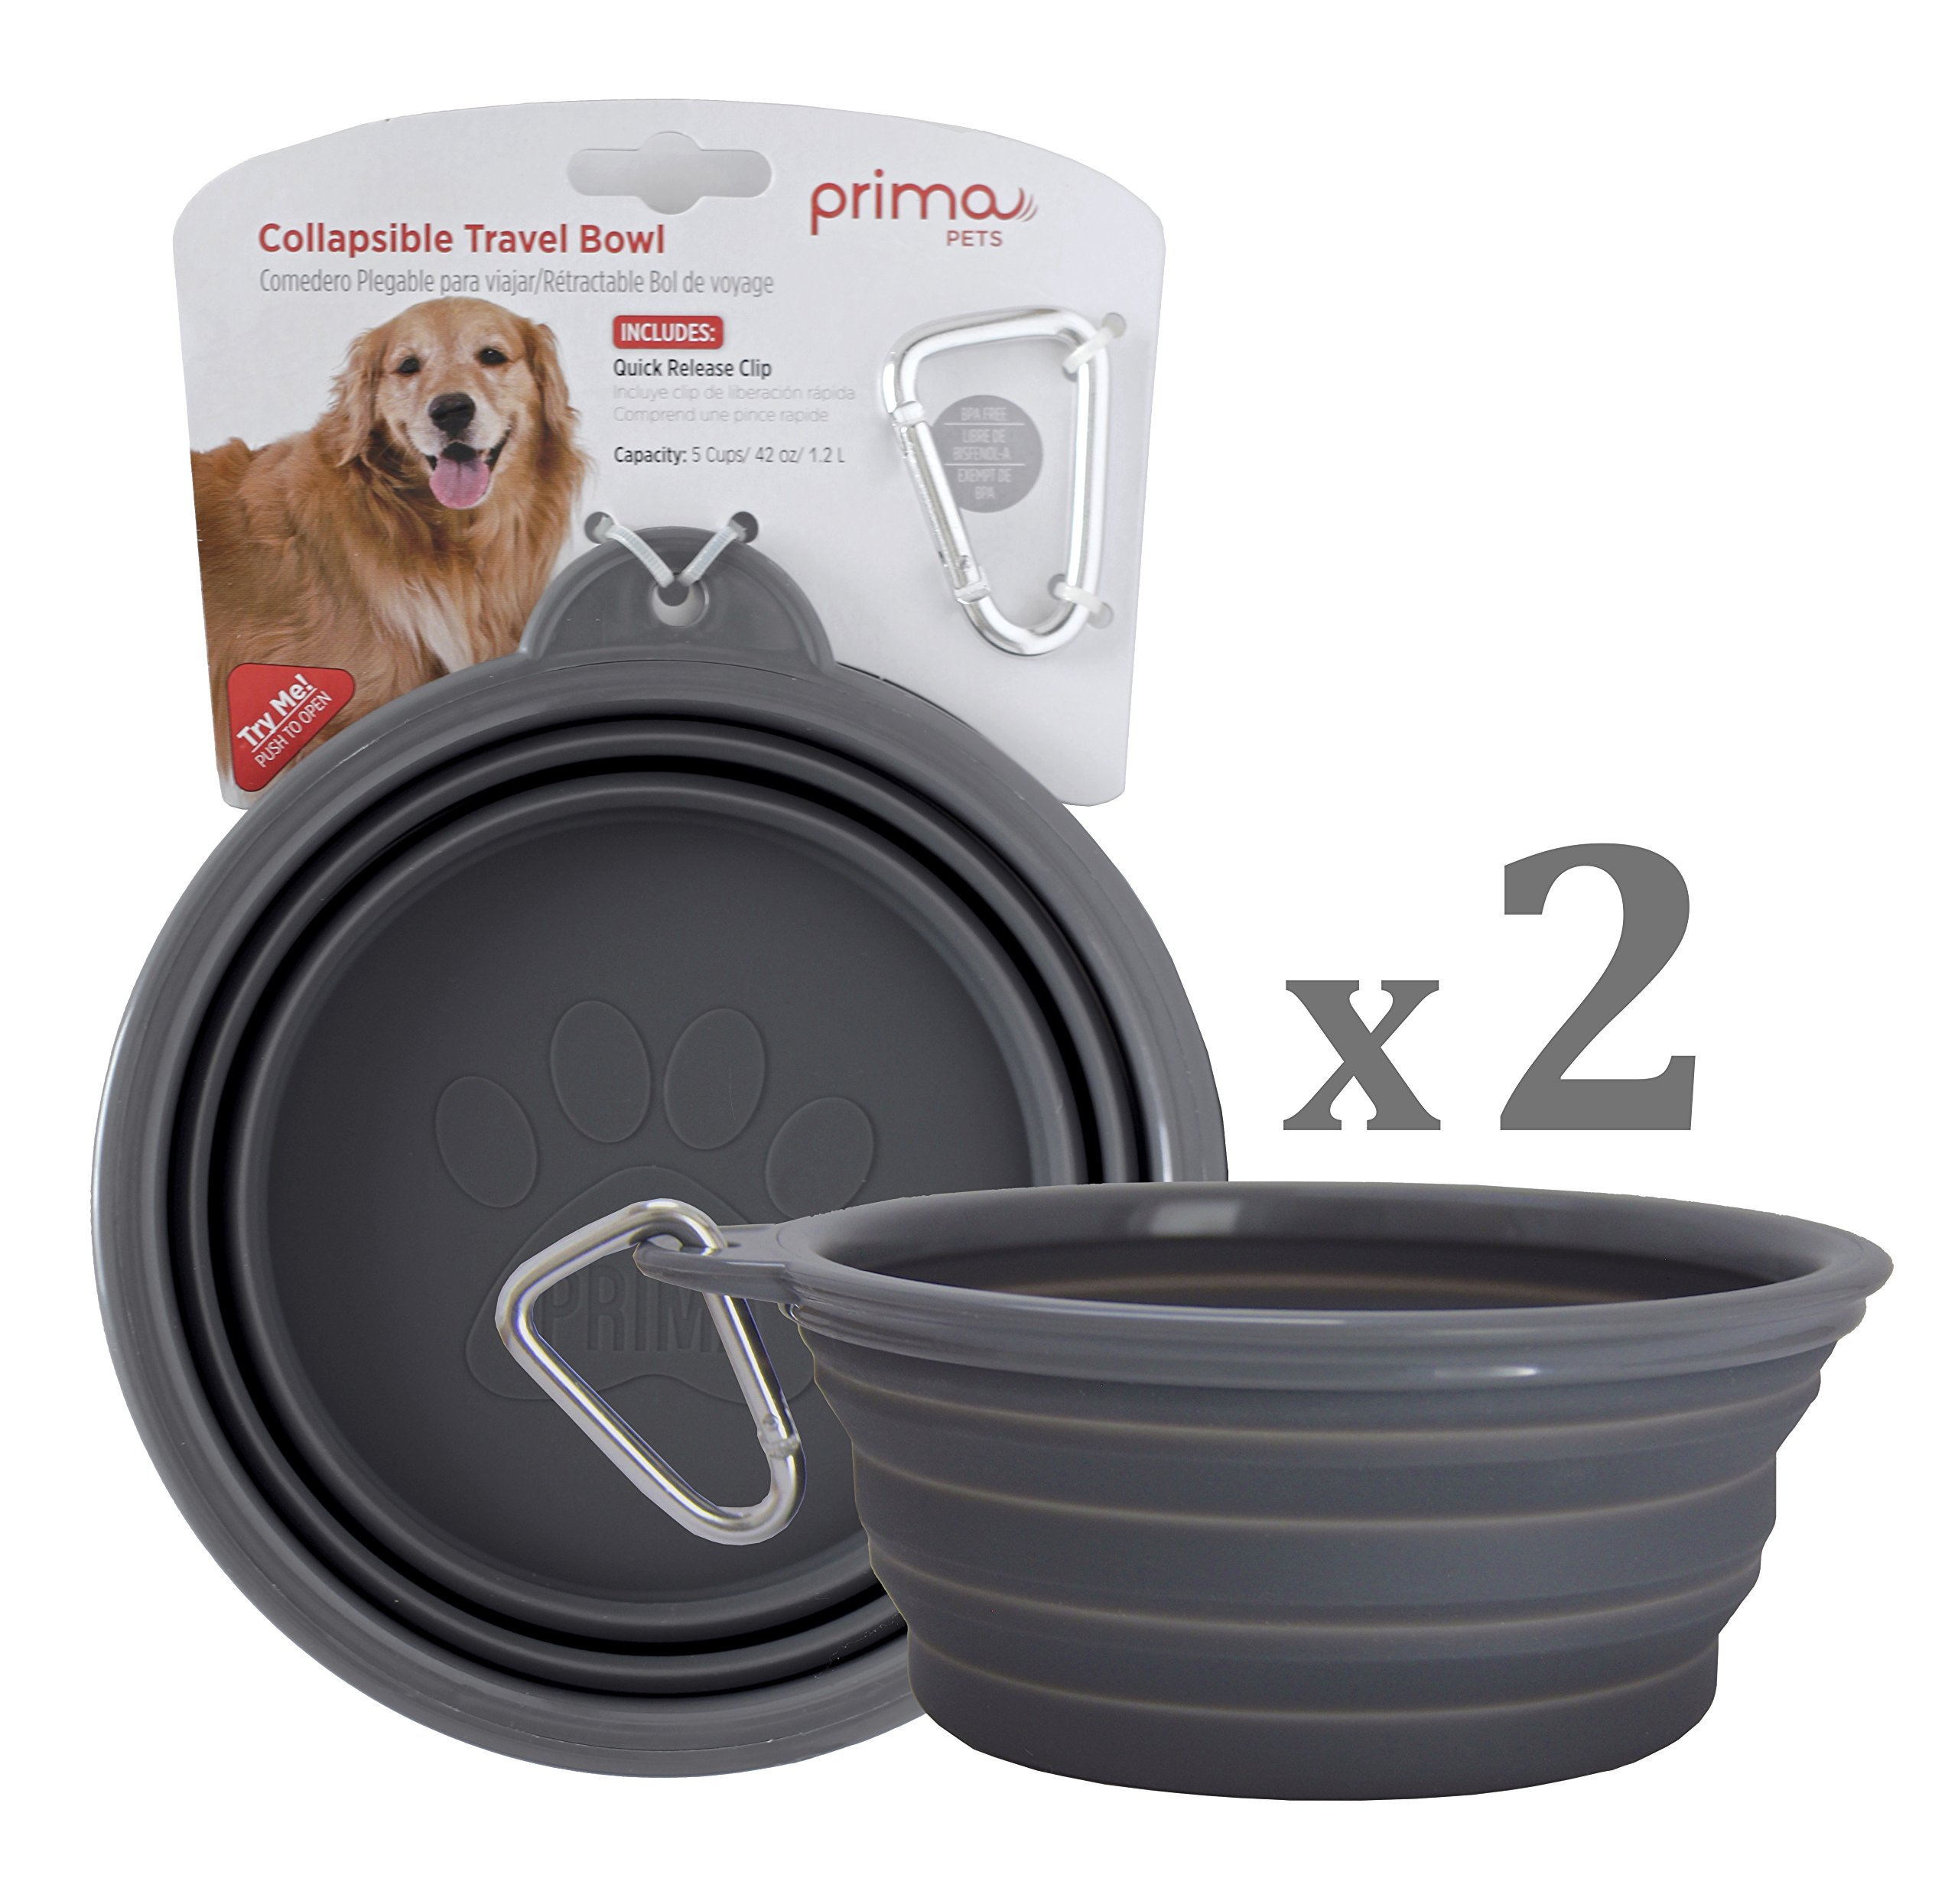 SALE: Prima Pet Collapsible Silicone Water Travel Bowl with Clip for Dog and Cat, Portable and Durable Pop-up Feeder for Convenient On-the-go Feeding – Size: LARGE (5 Cups) GREY – 2 PACK